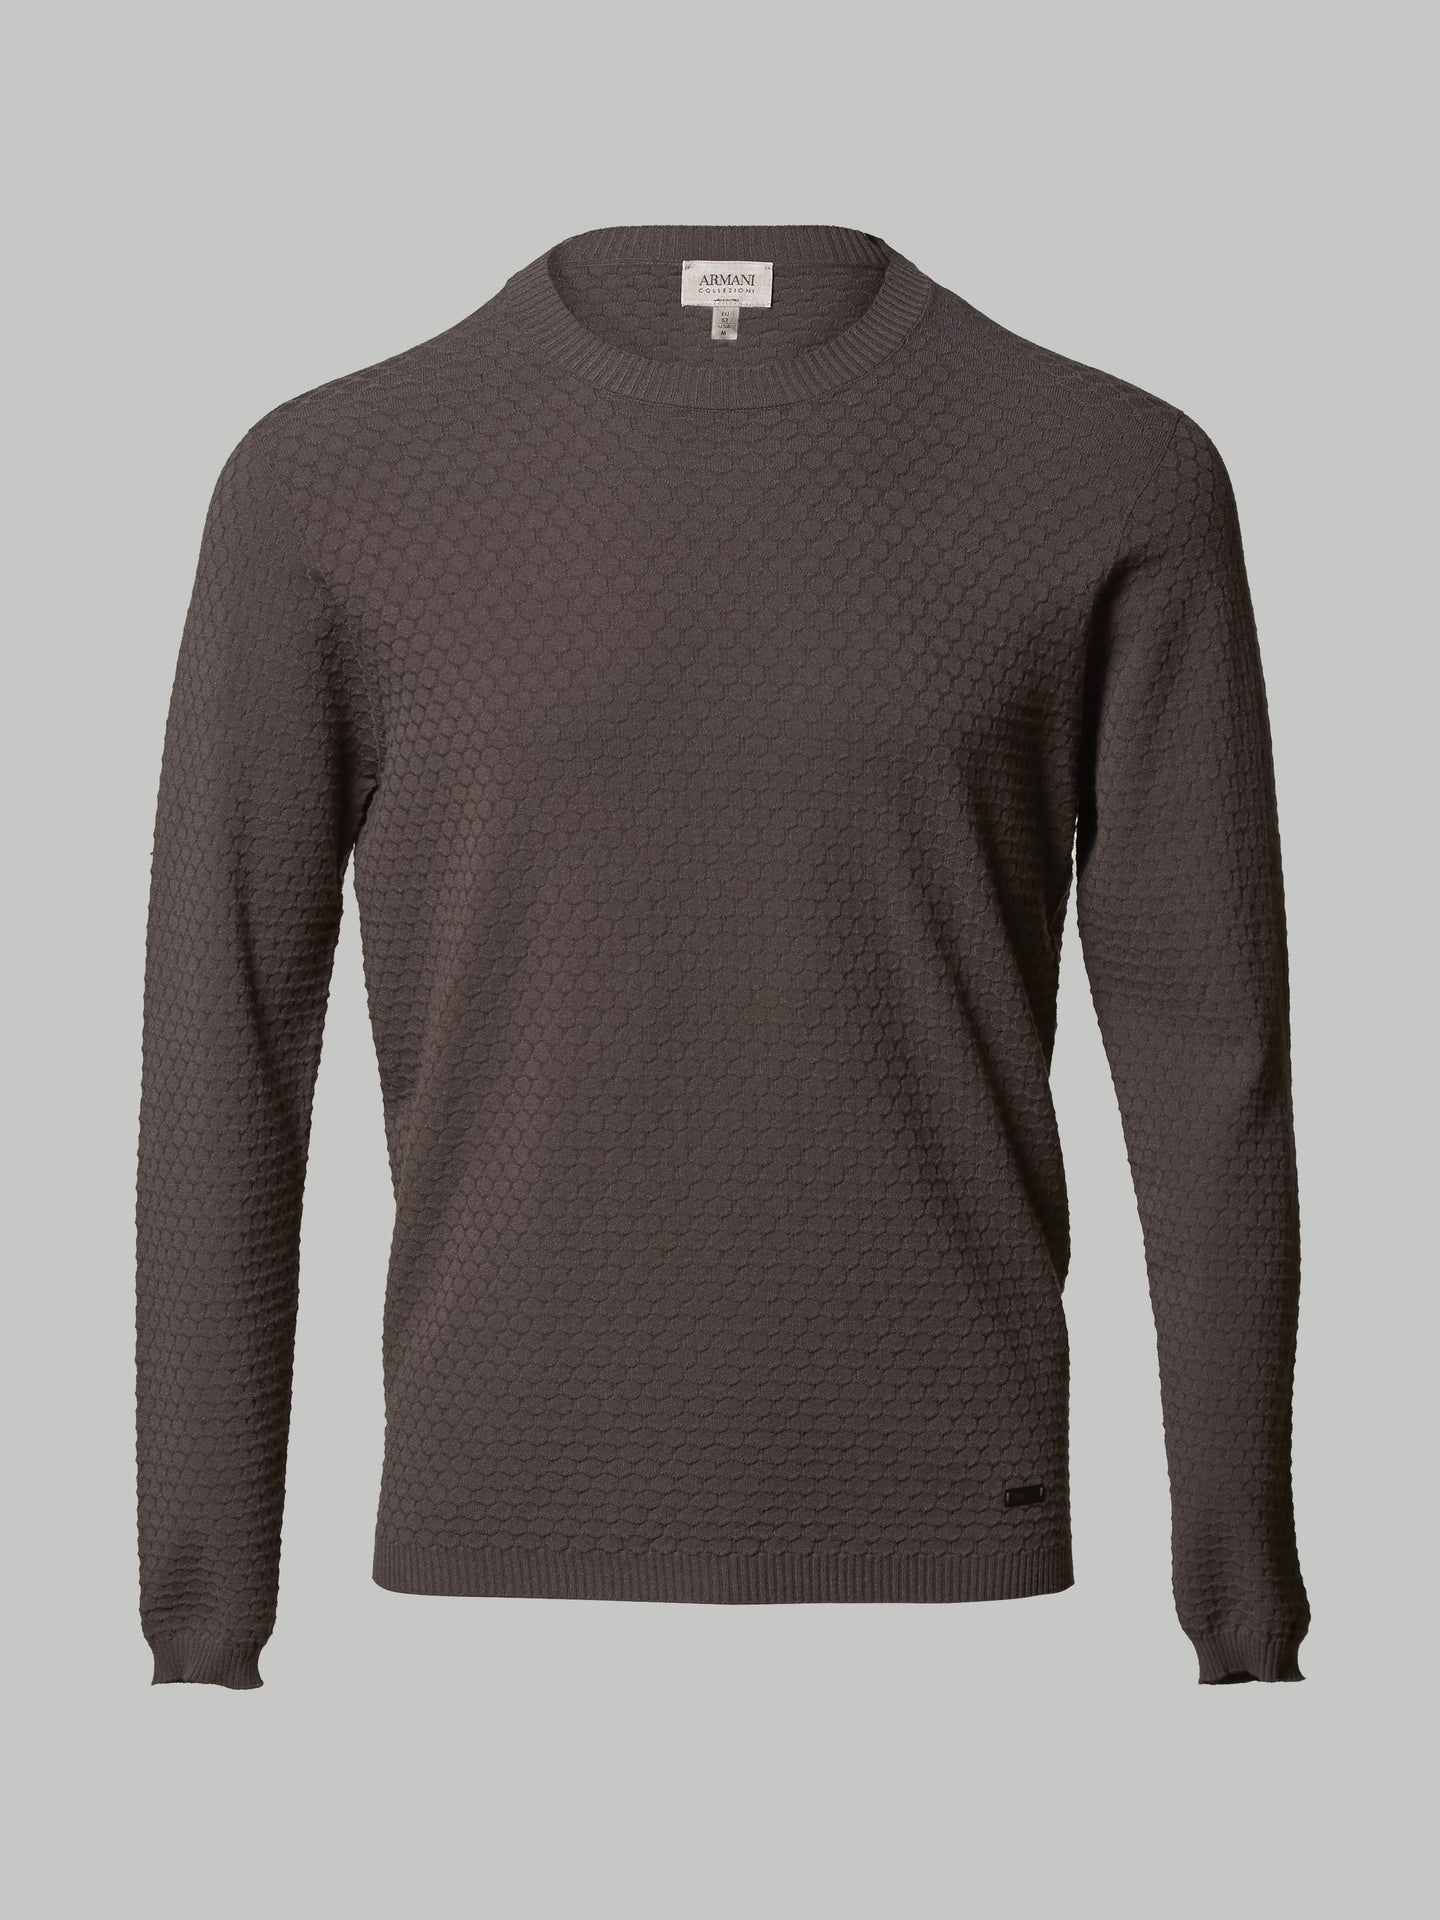 Armani Crew Neck Textured Knit (Grey)